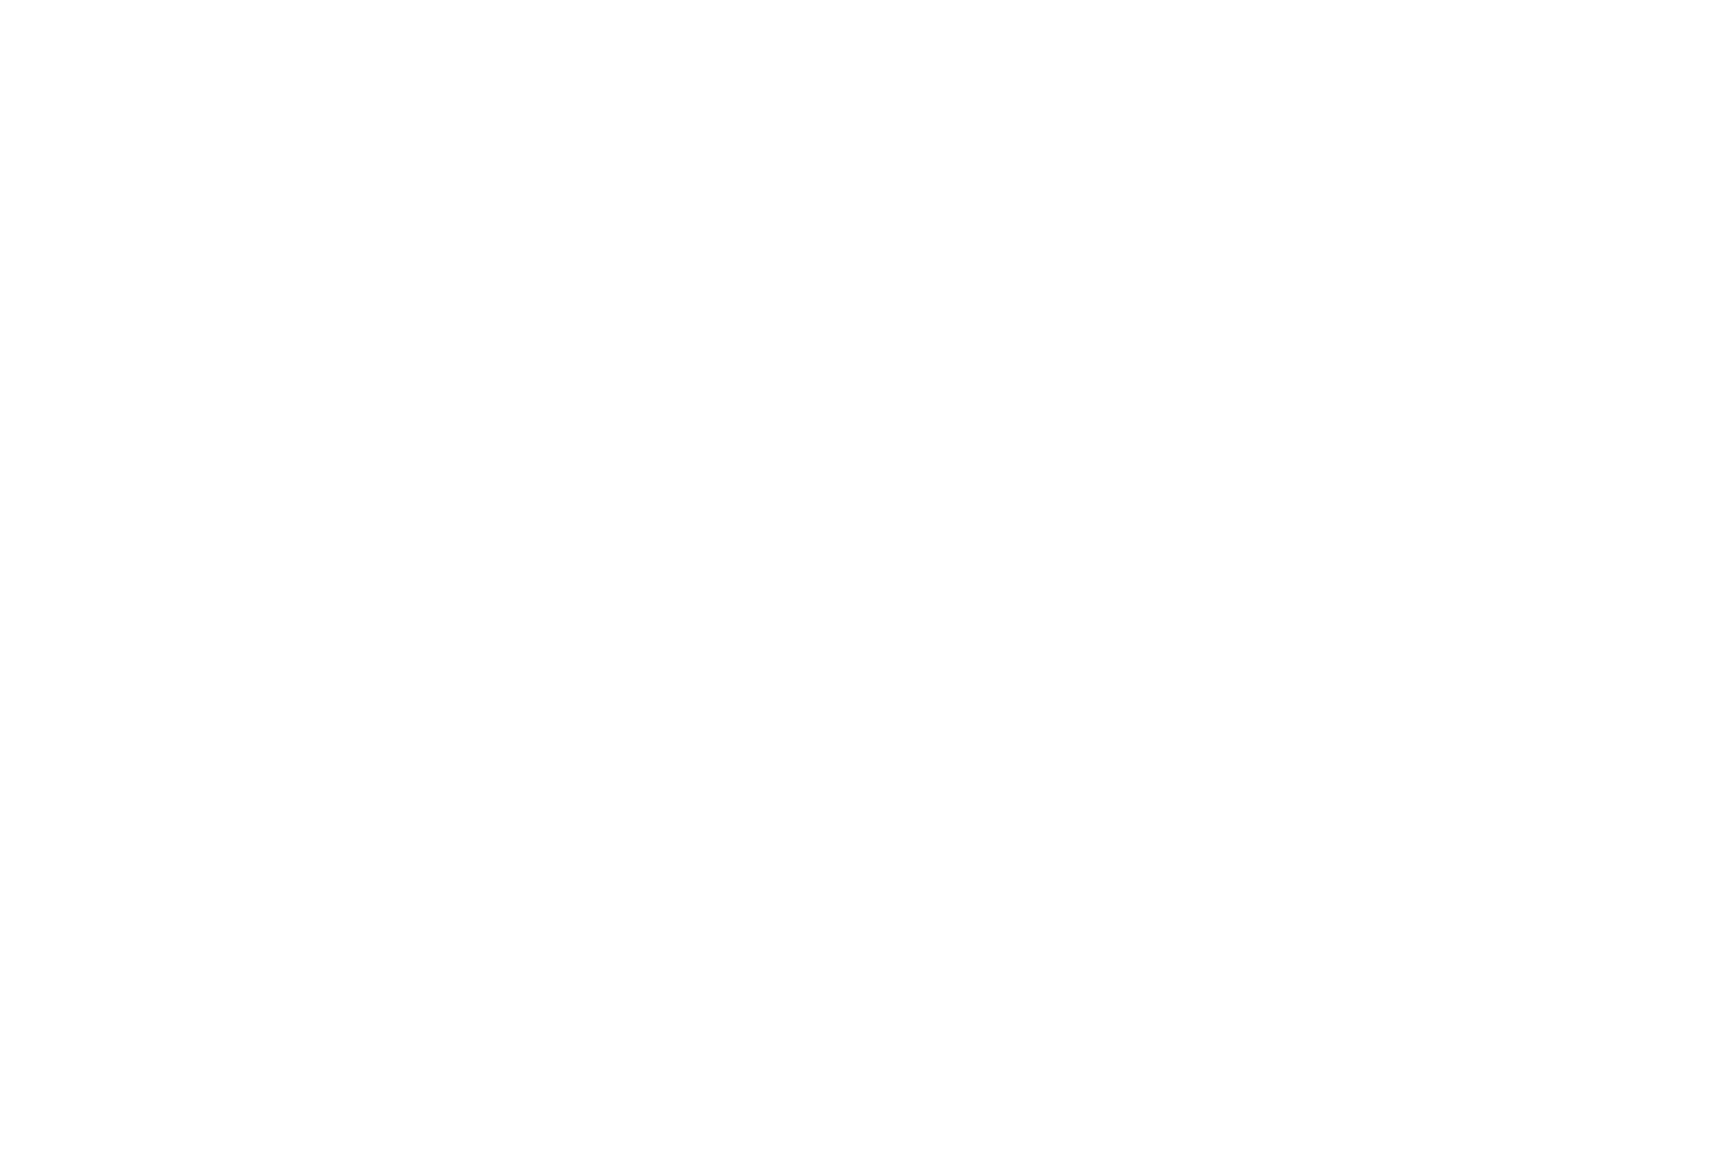 OFFICIAL SELECTION - Rhino Comedy Shorts Film Festival - 2020